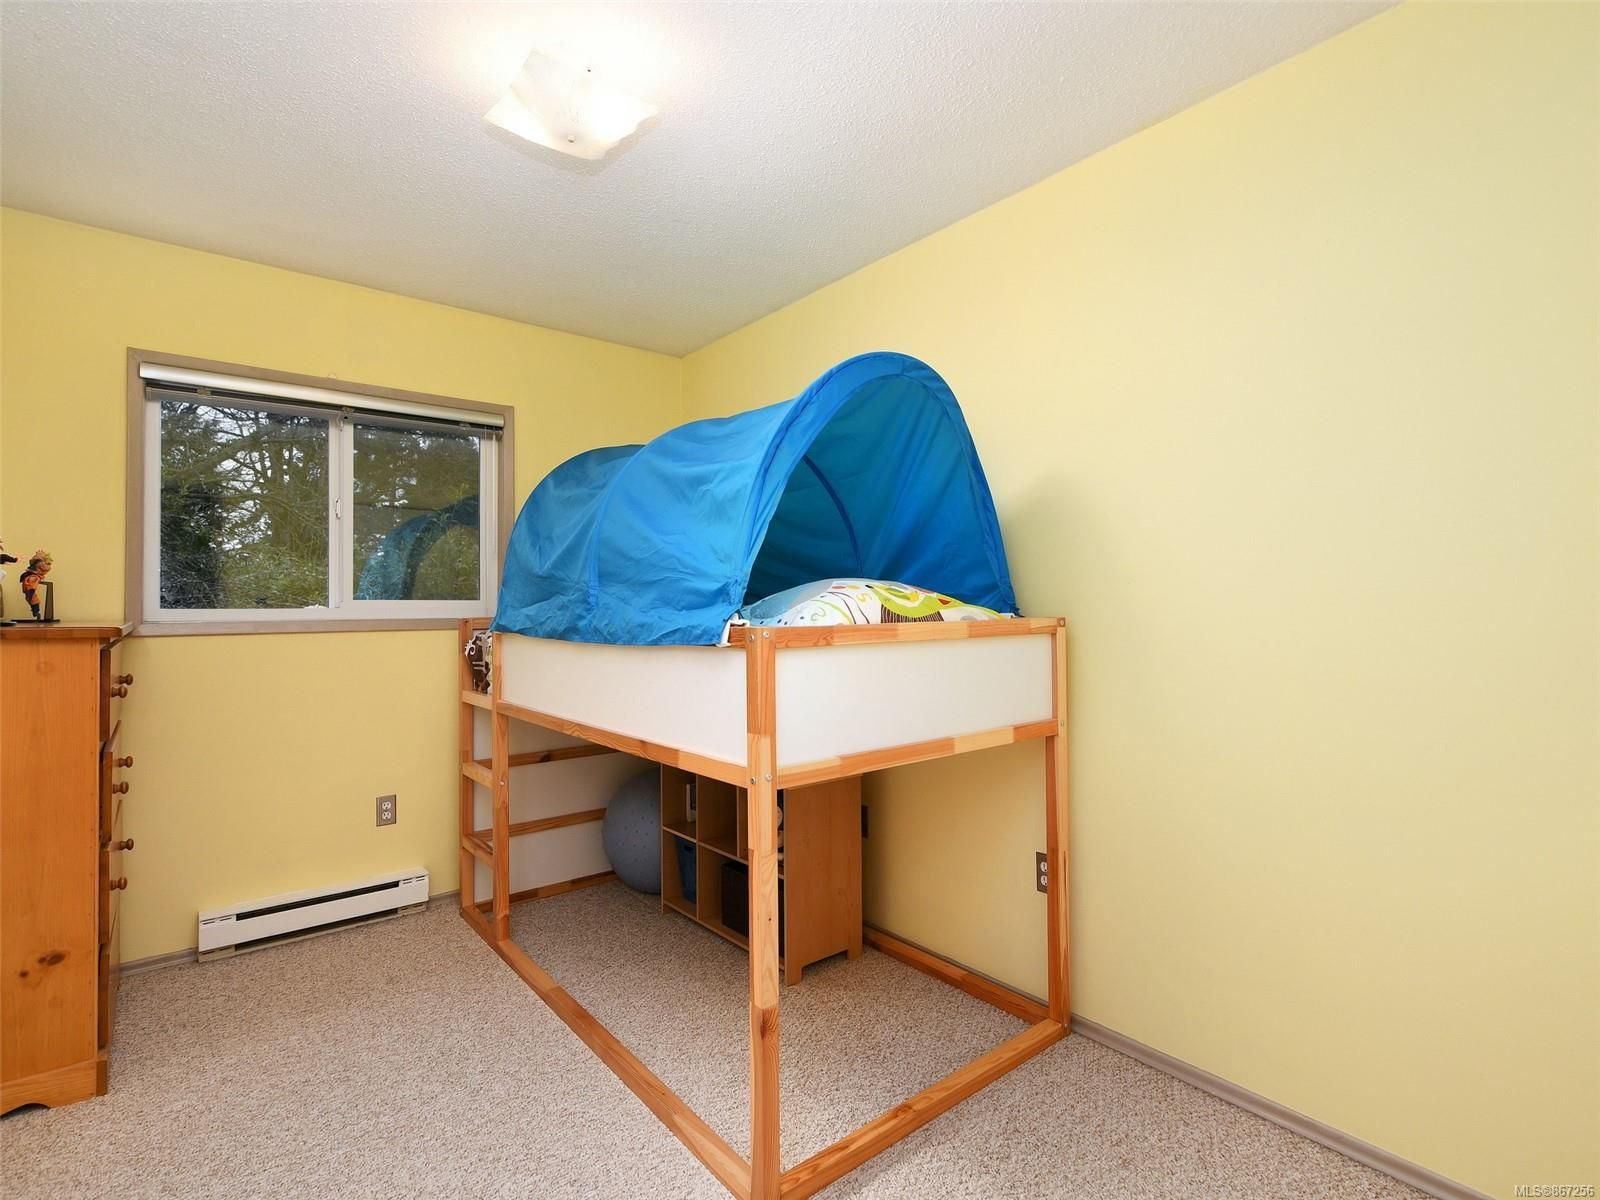 Photo 17: Photos: 5 869 Swan St in : SE Swan Lake Row/Townhouse for sale (Saanich East)  : MLS®# 867256